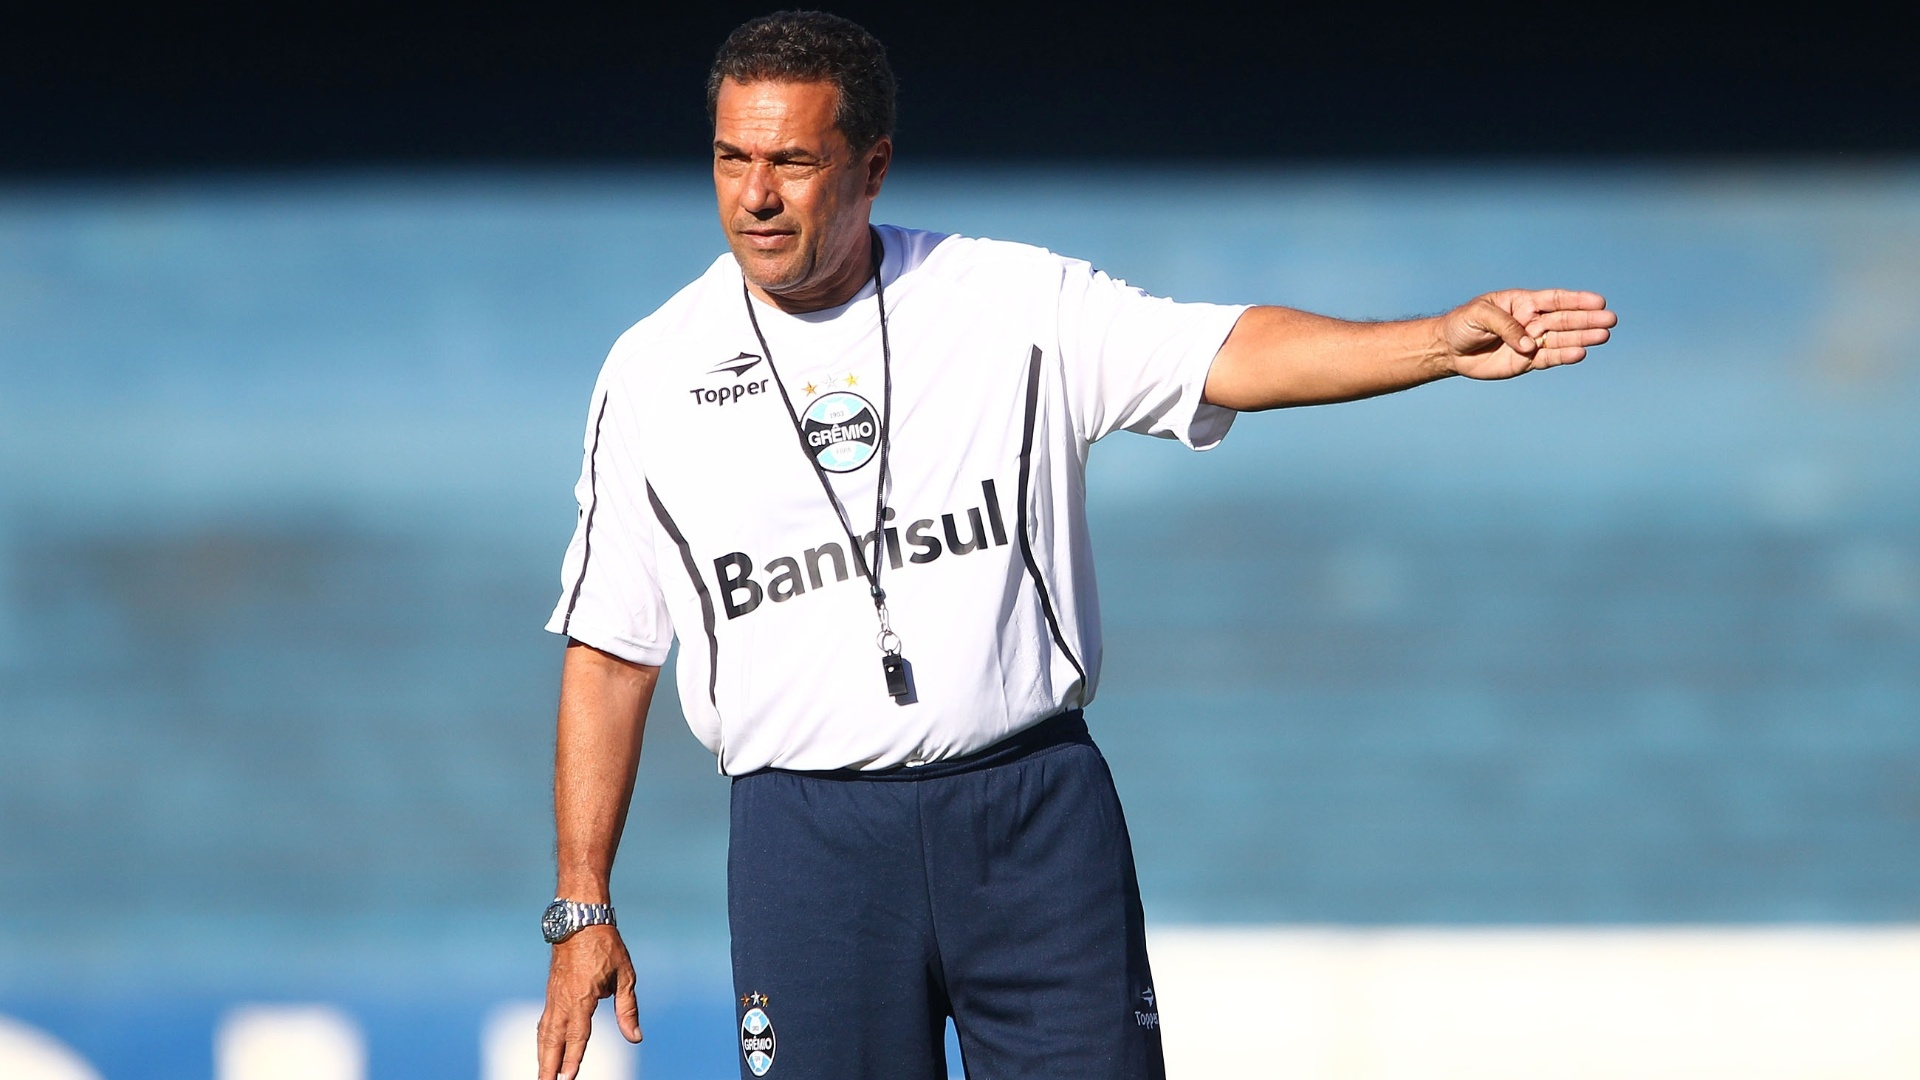 Vanderlei Luxemburgo comanda treino do Grmio